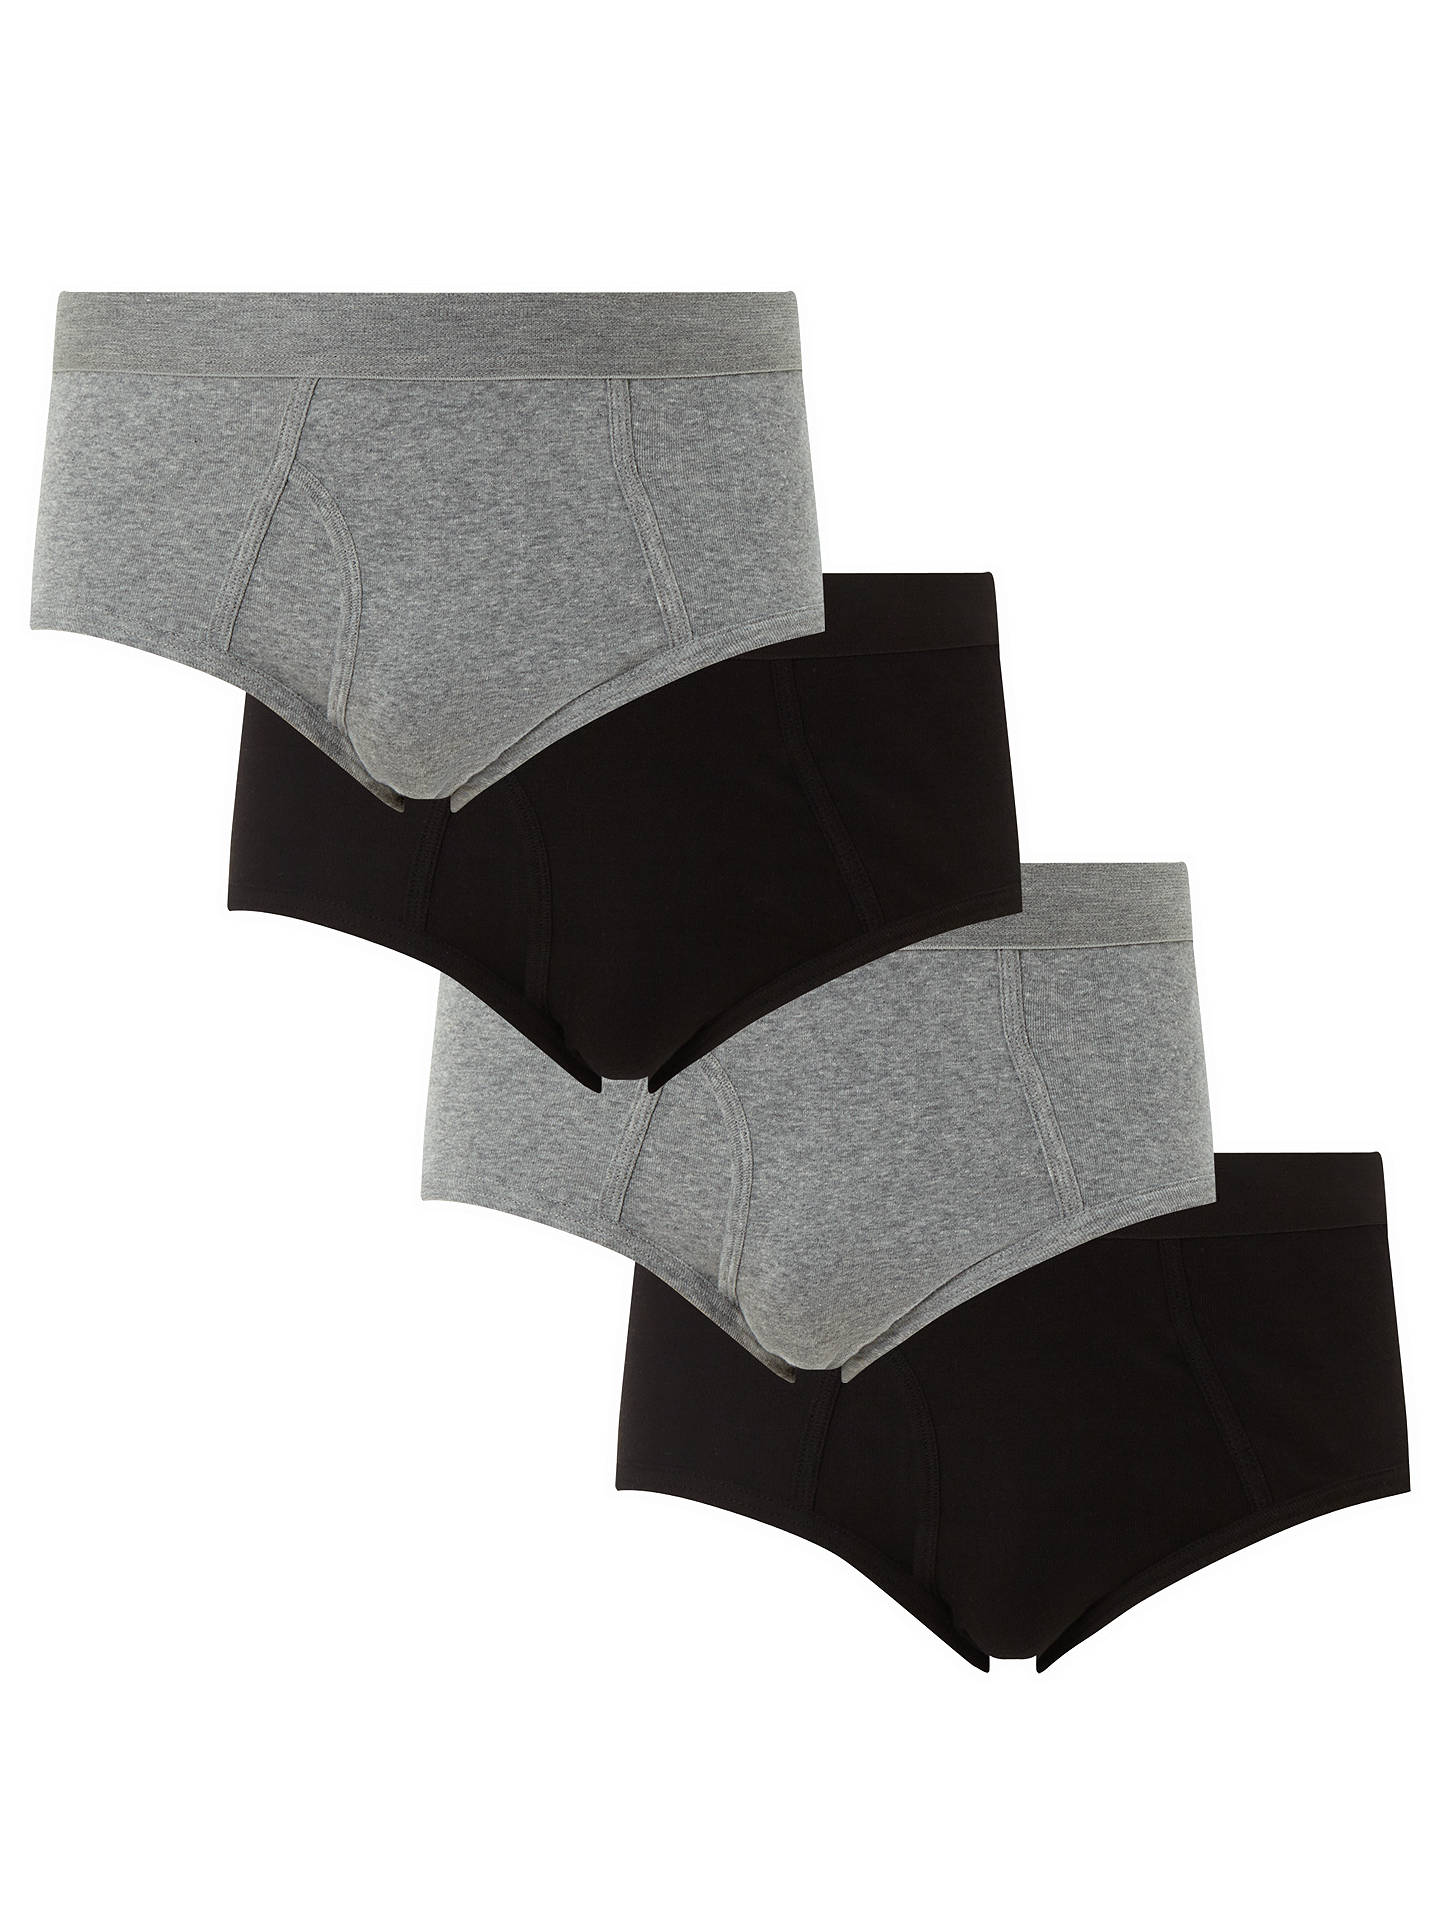 Buy John Lewis & Partners Organic Cotton Briefs, Pack of 4, Black/Grey, S Online at johnlewis.com